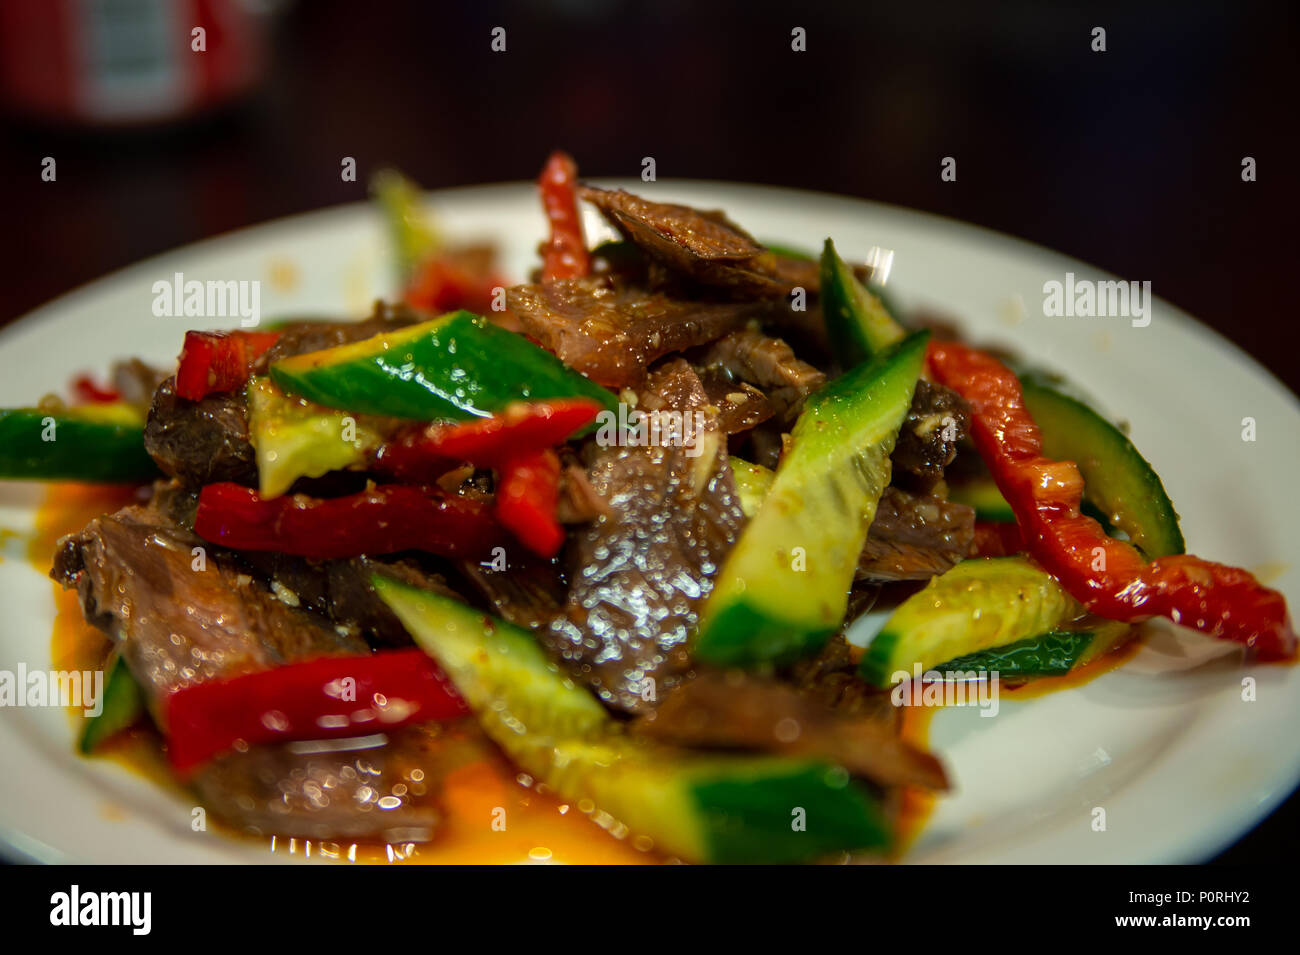 Uyghur Cuisine: beef salad, sliced beef with fresh cucumber, red peppers and chili oil - Stock Image